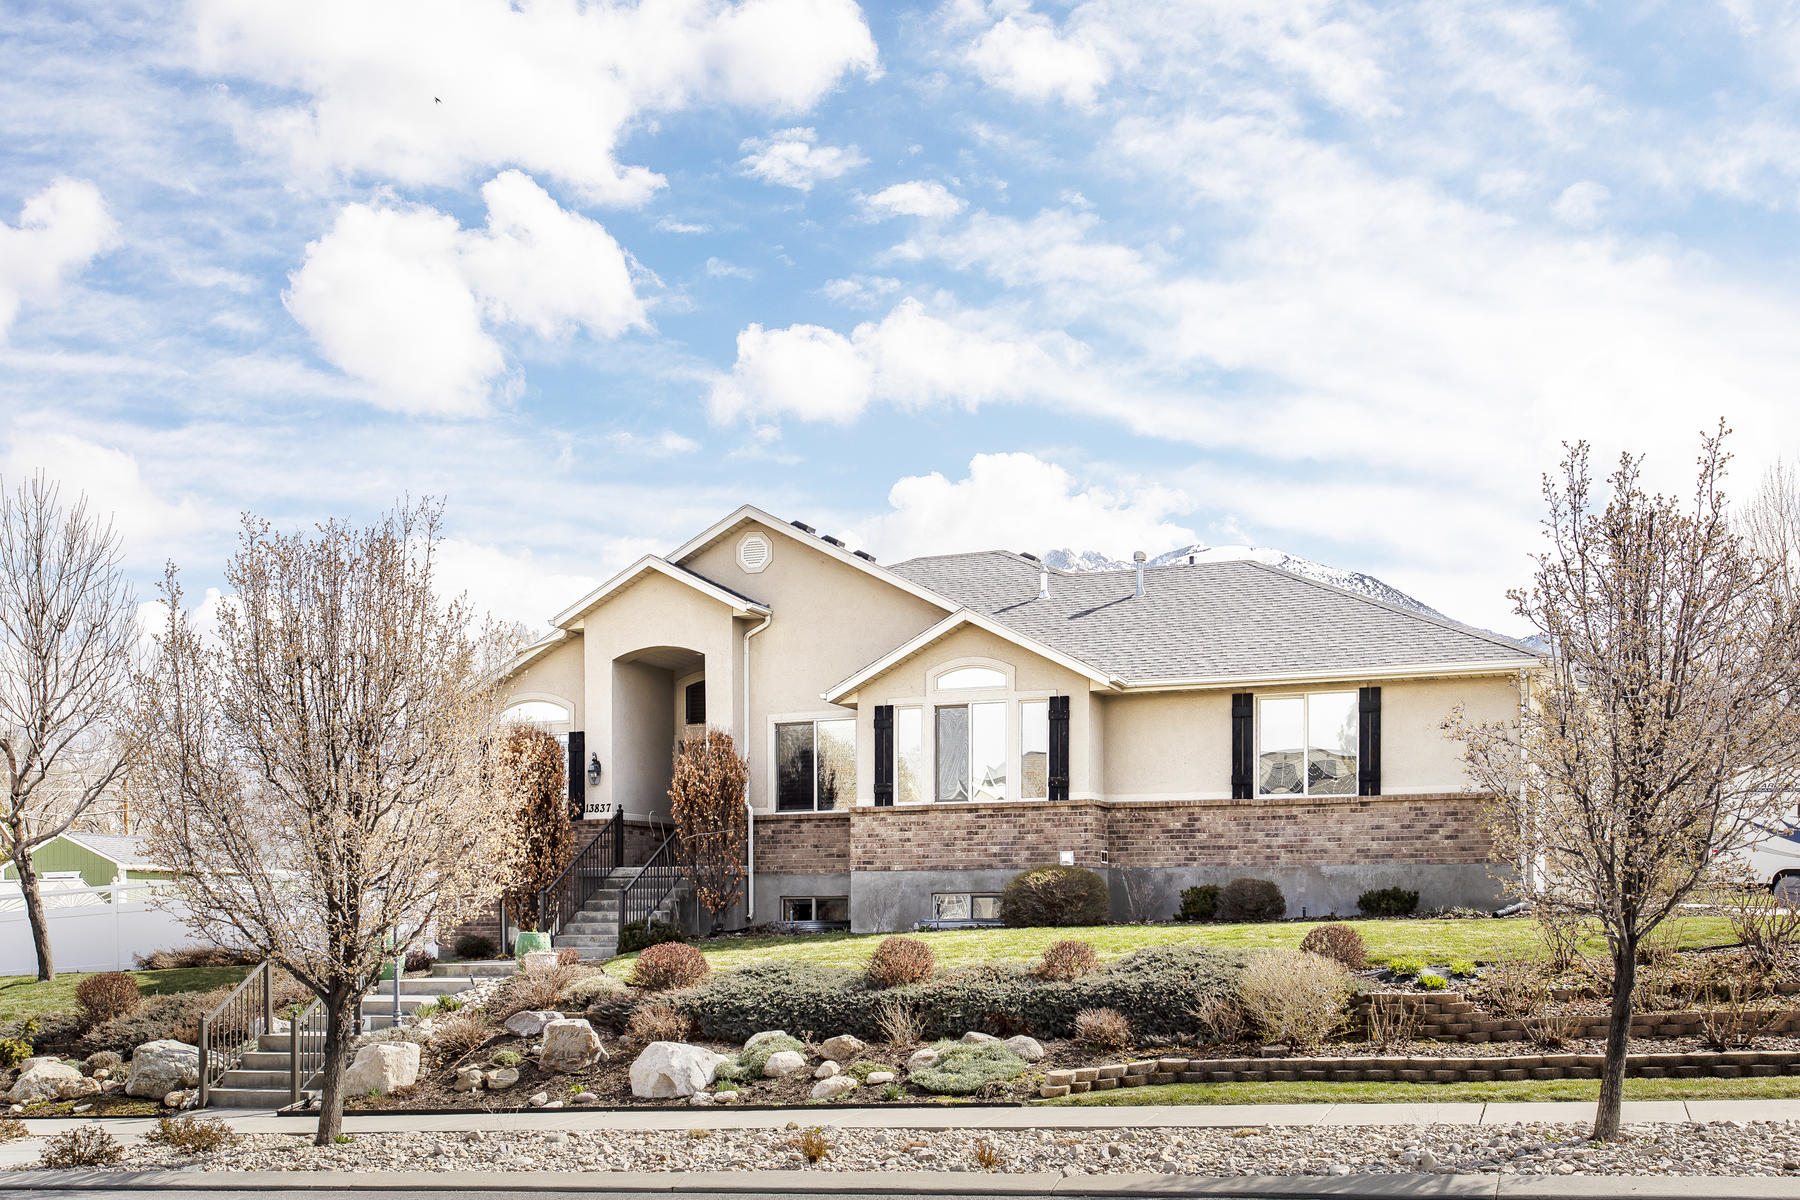 Single Family Homes for Sale at Stylish Draper Rambler With Exceptional Yard And Scenic Views 13837 S Osborne Ln Draper, Utah 84020 United States